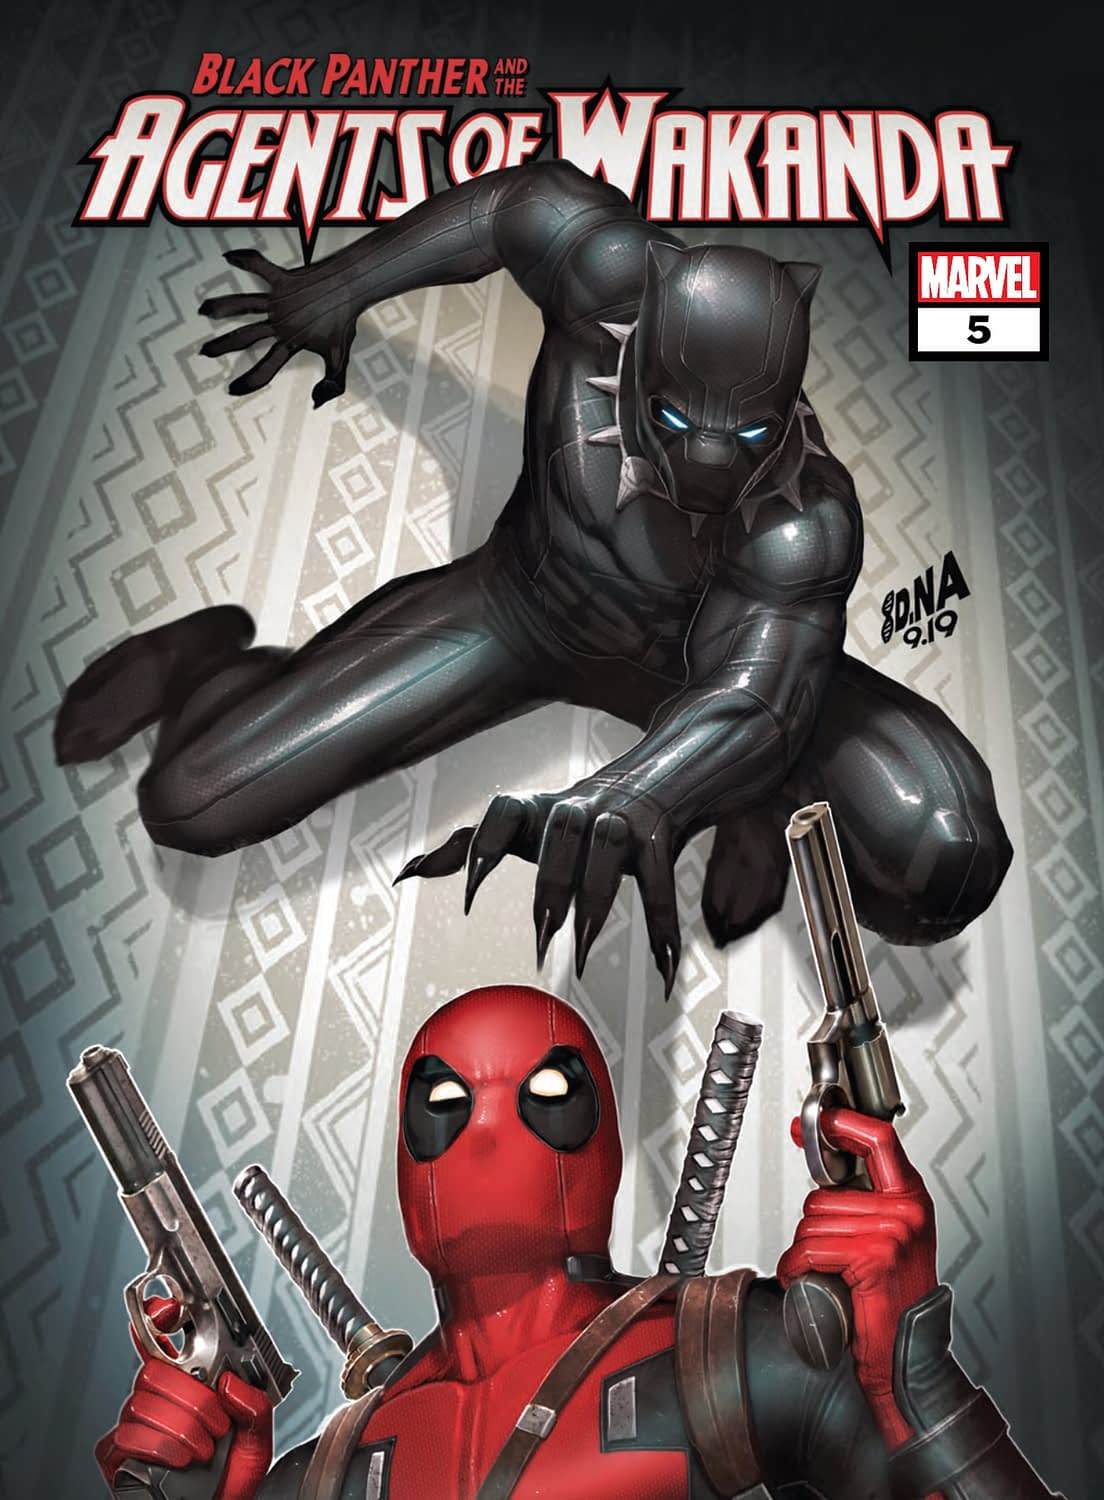 """REVIEW: Black Panther And The Agents Of Wakanda #5 -- """"This Very Fun Issue Makes All The Right Moves"""""""